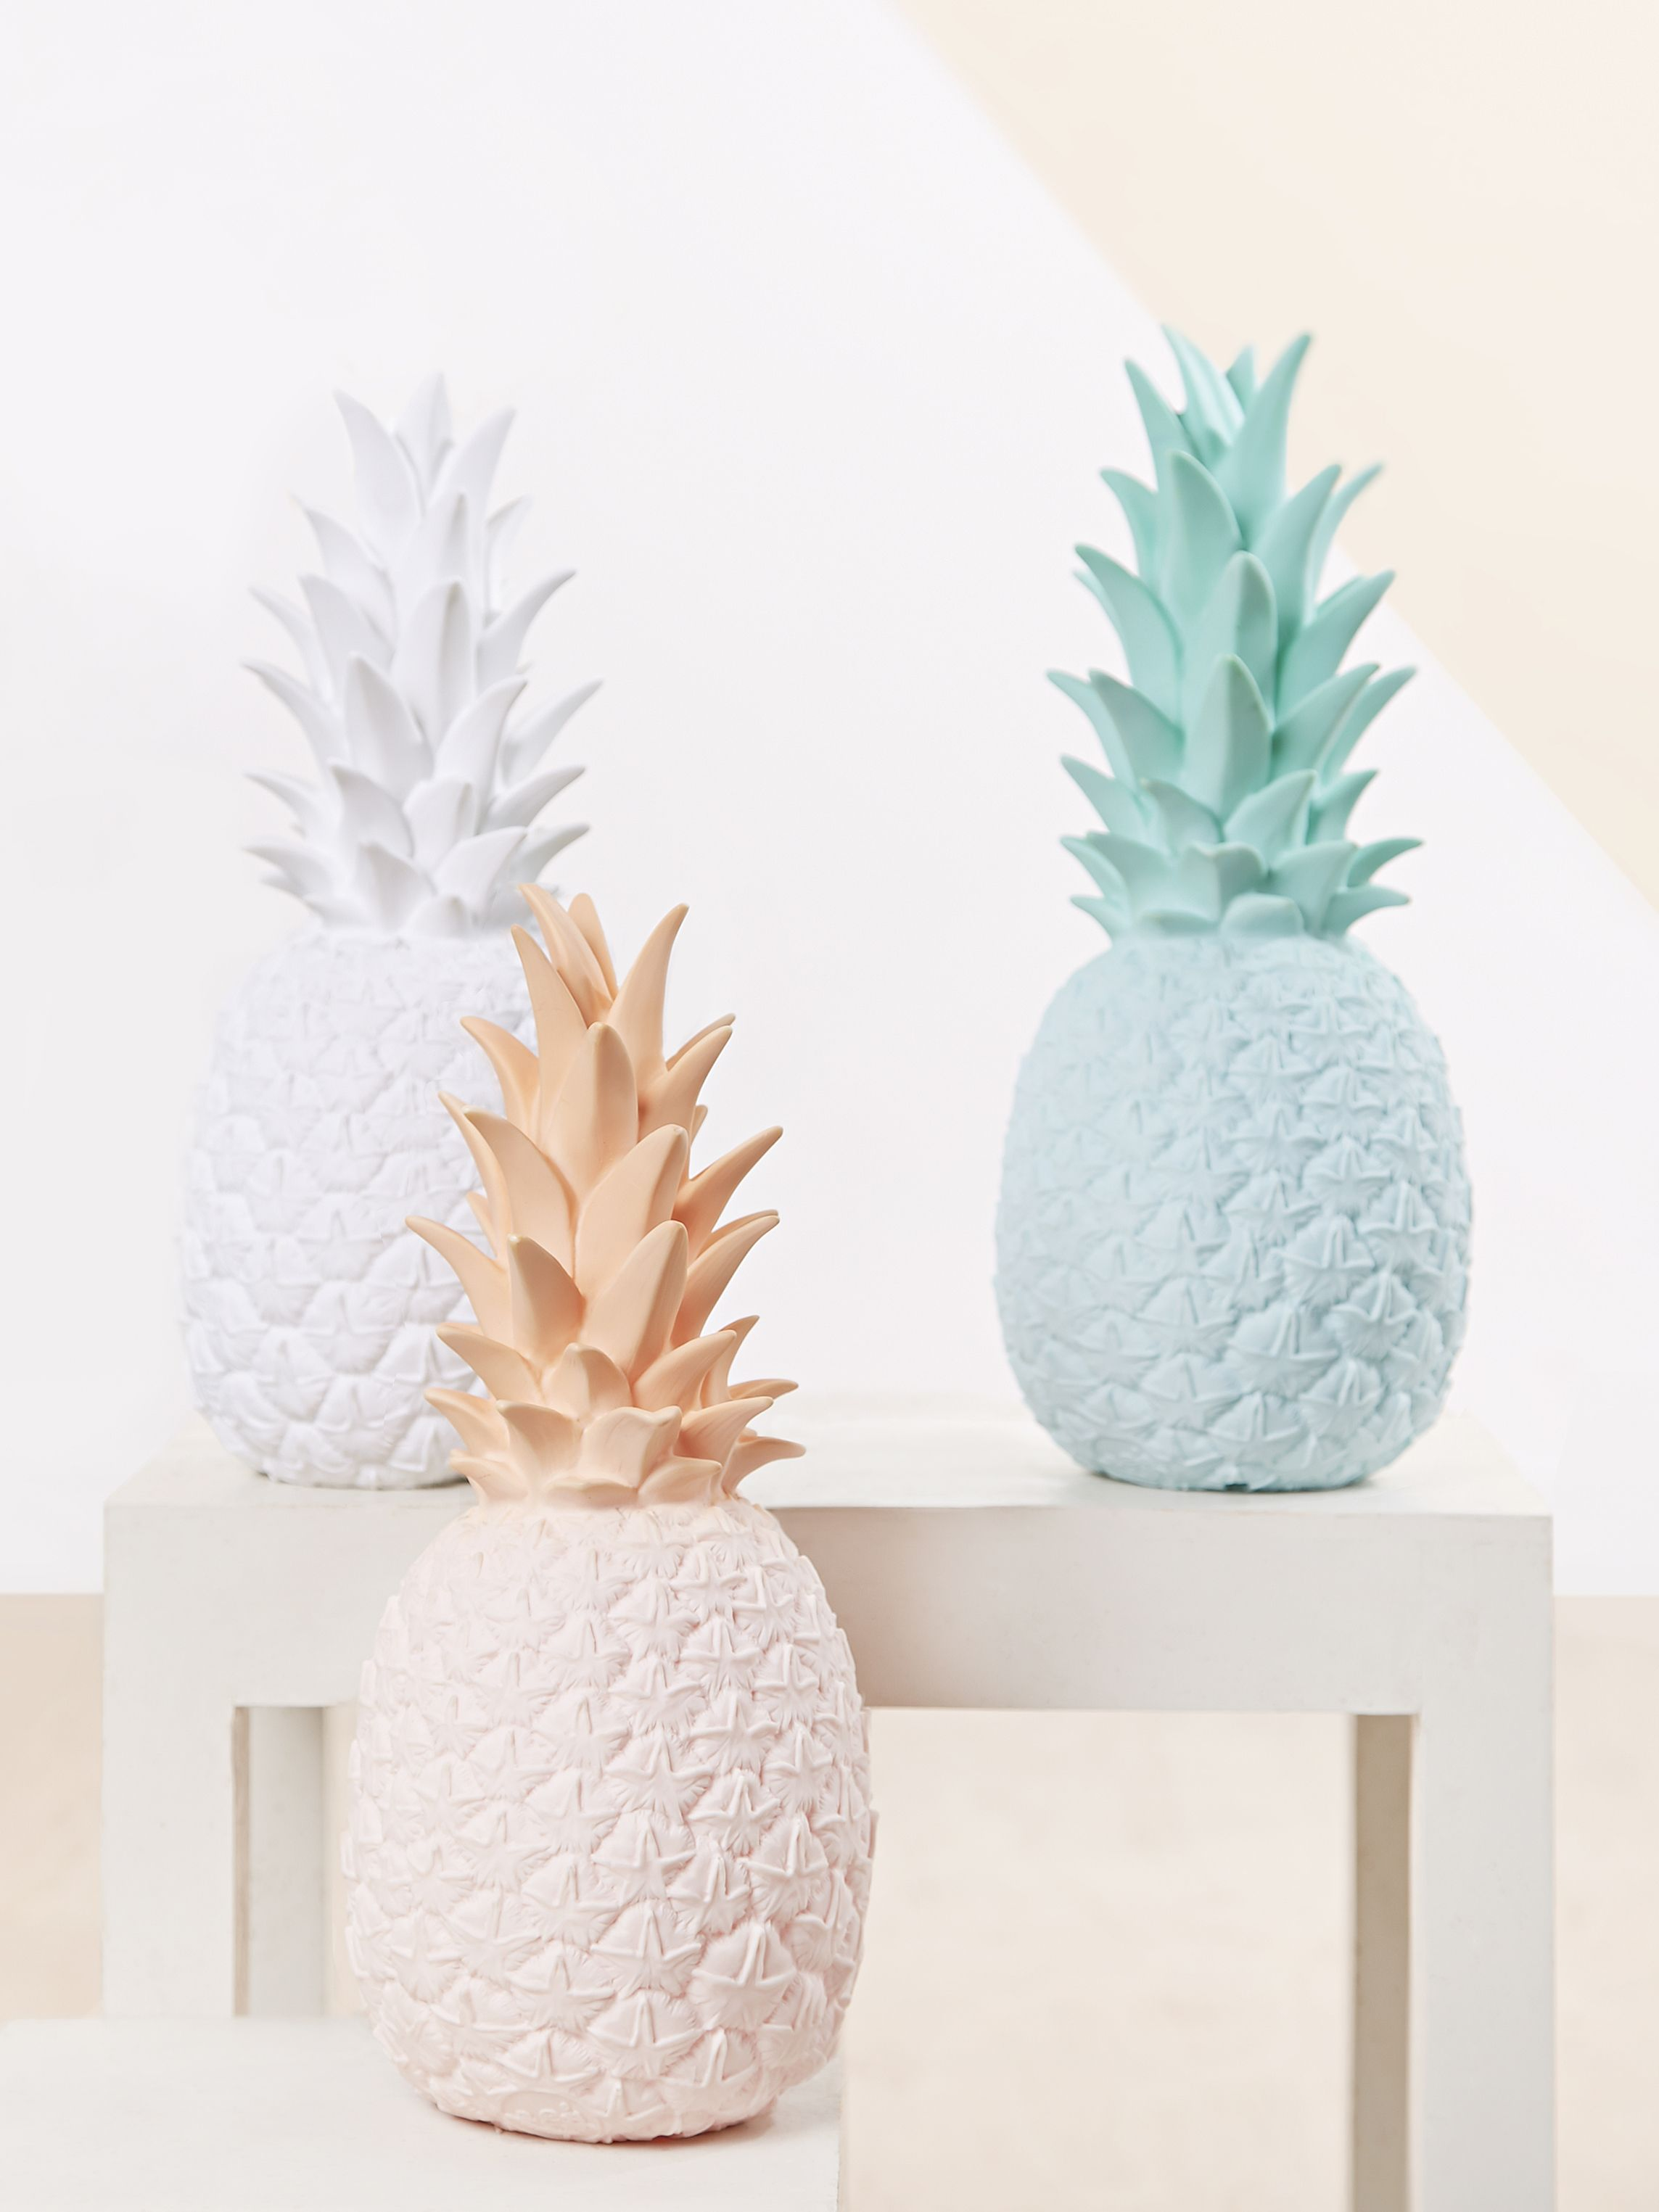 Lampes d co en forme d 39 ananas couleur pastel id es for Objet de decoration